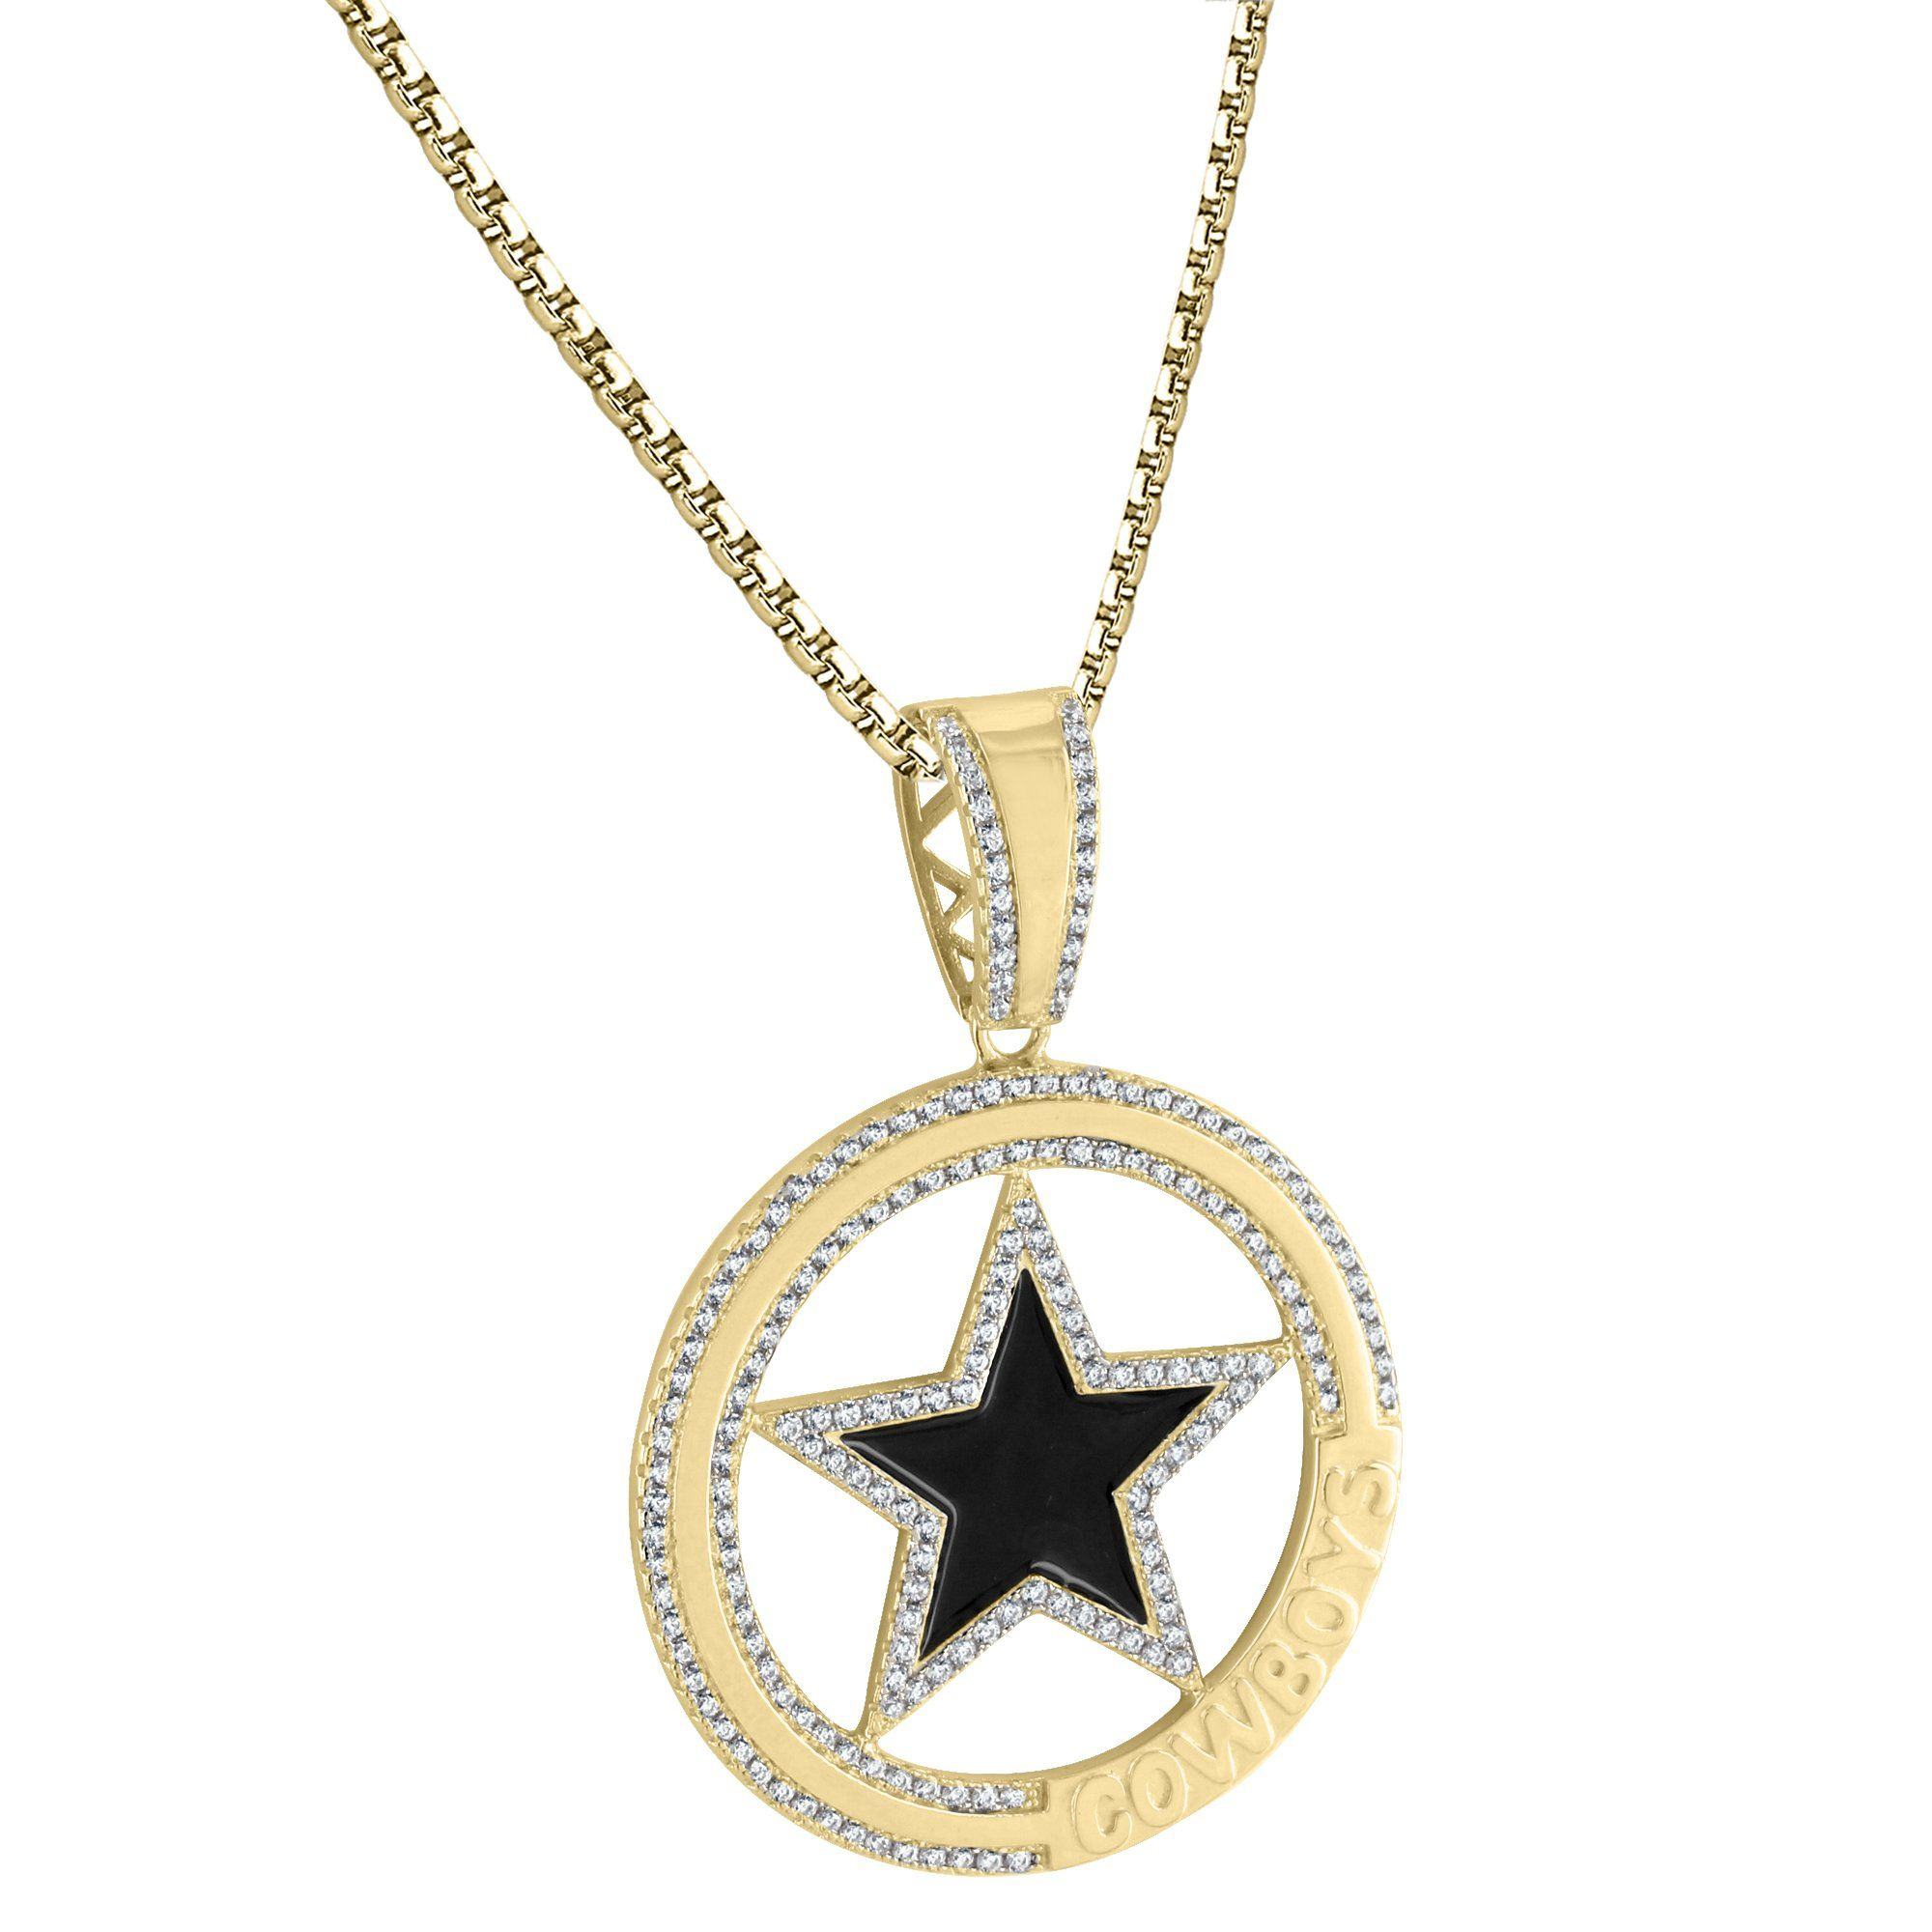 Nfl dallas cowboy iced out logo star sterling silver pendant nfl 14k gold finish nfl dallas cowboy iced out logo star pendant 925 free box chain aloadofball Gallery